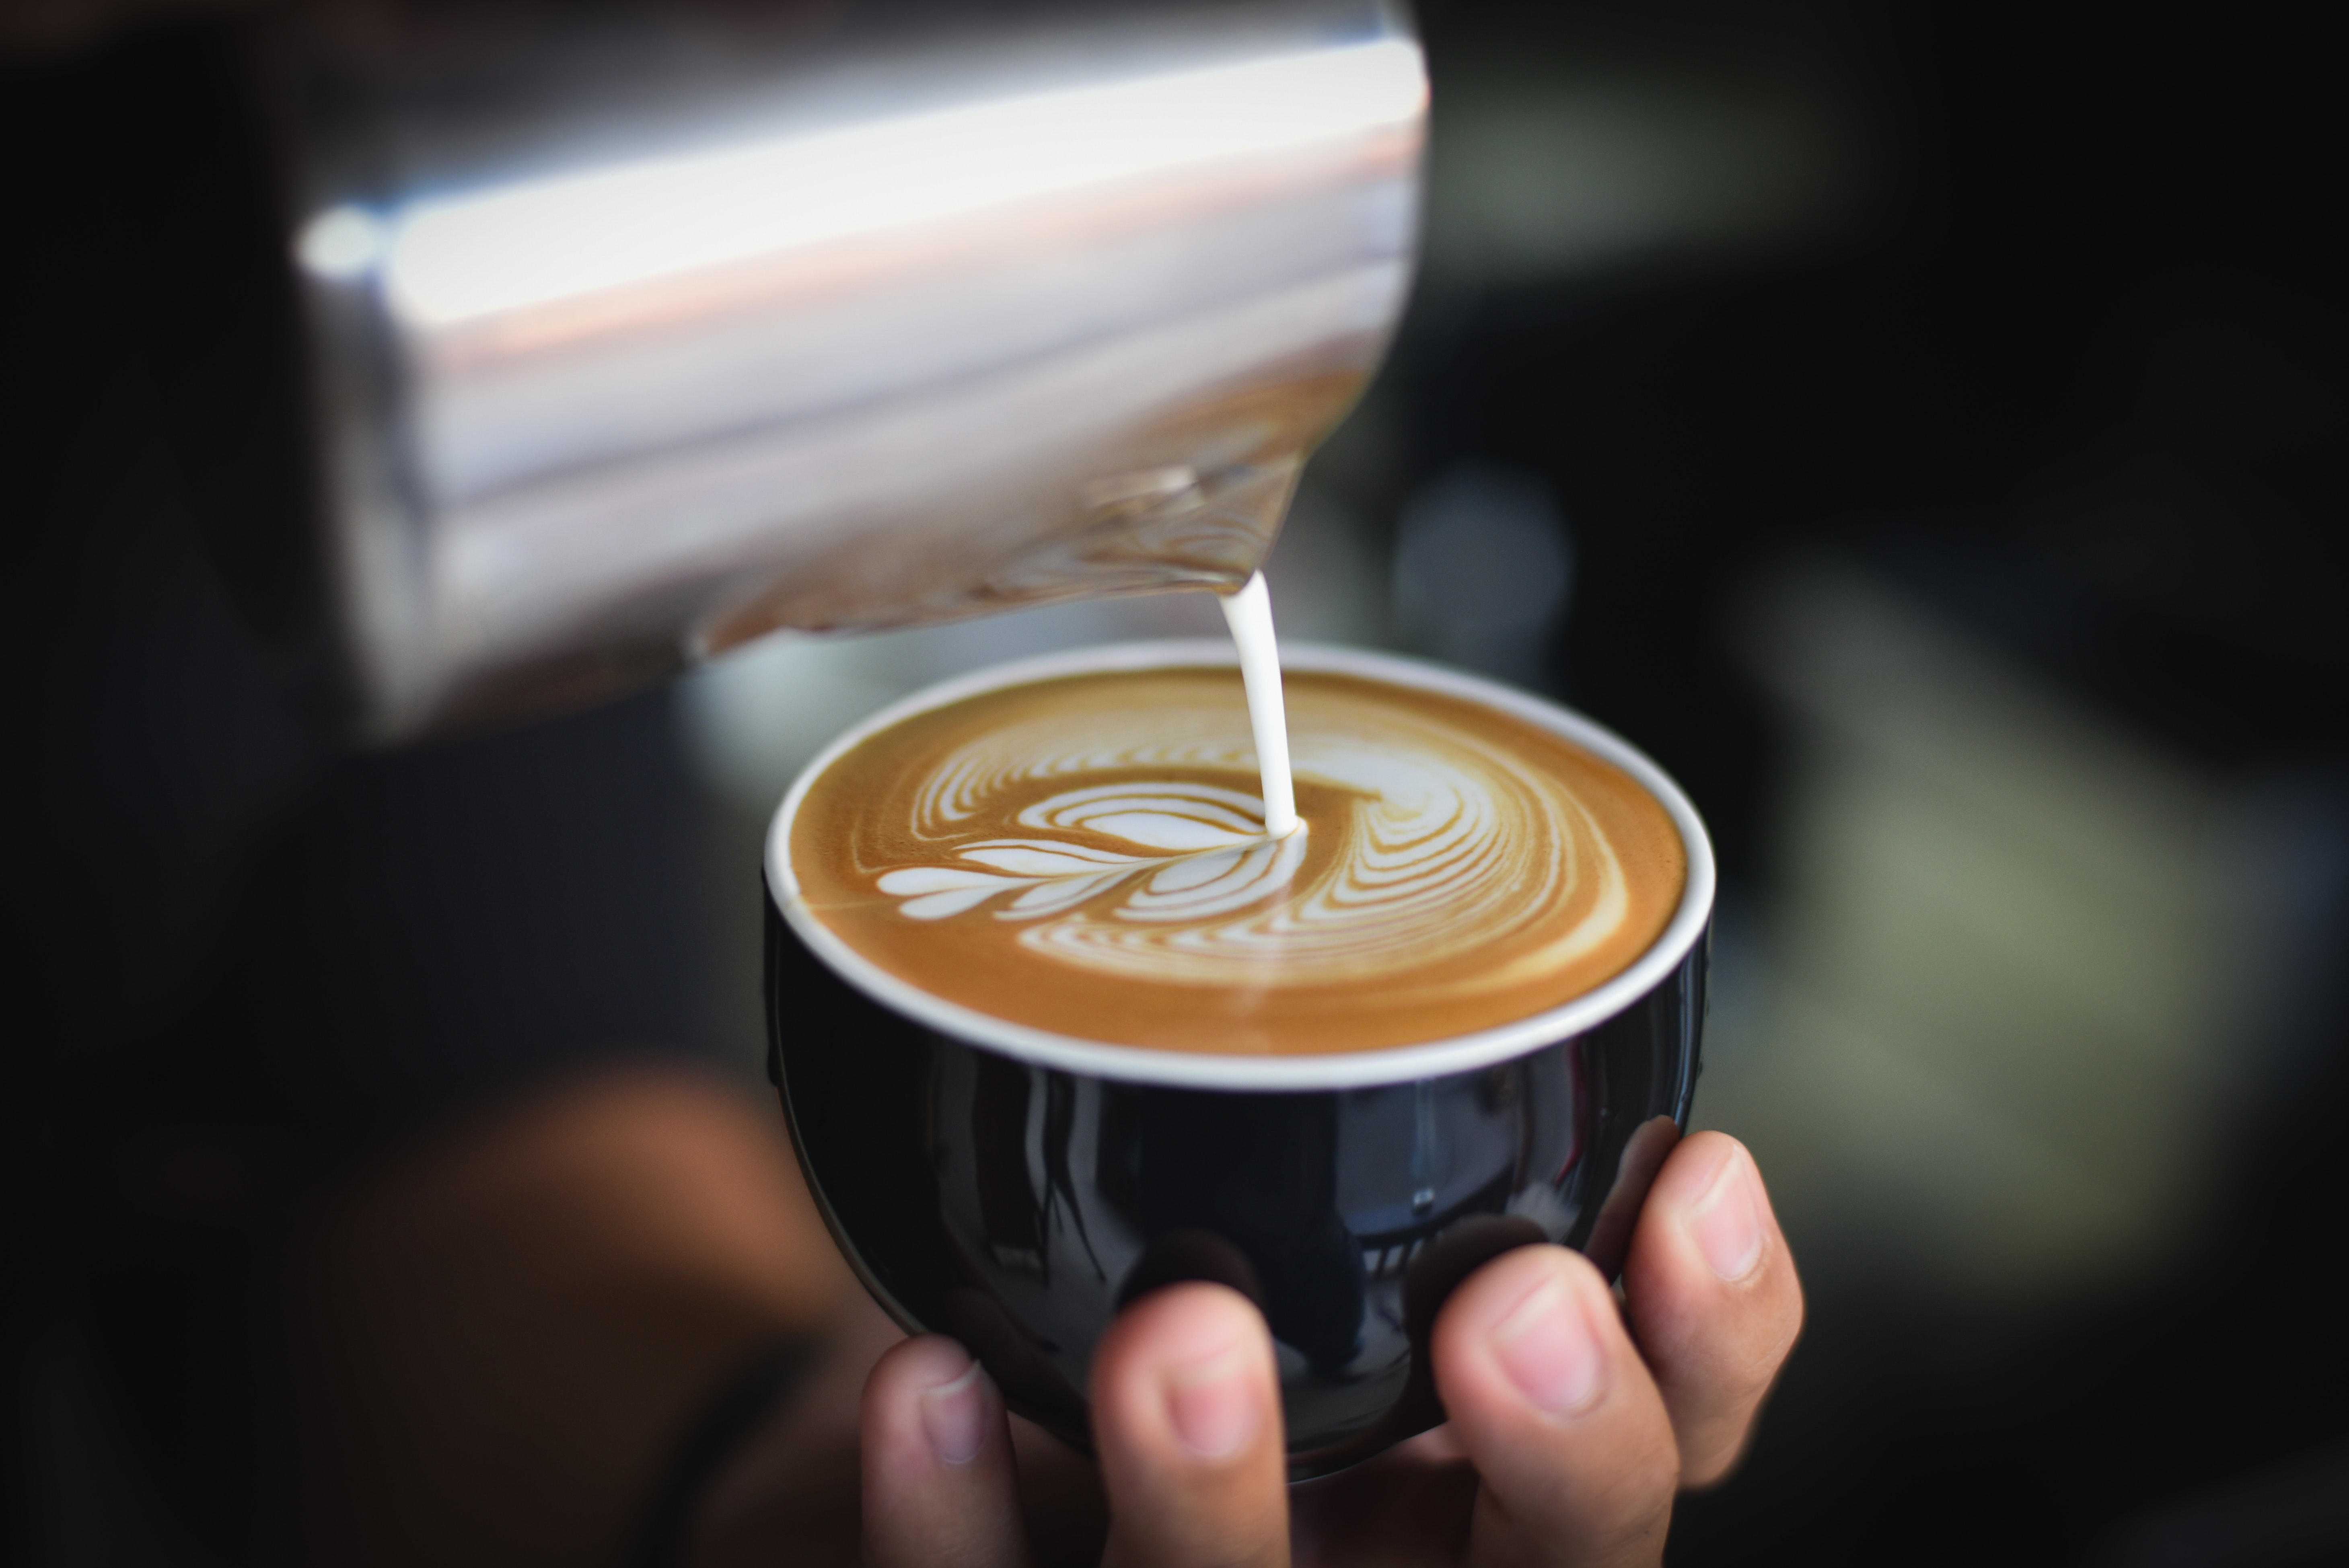 Close-up of Woman Holding Coffee Cup at Cafe, Aroma, Kettle, Foam, Focus, HQ Photo